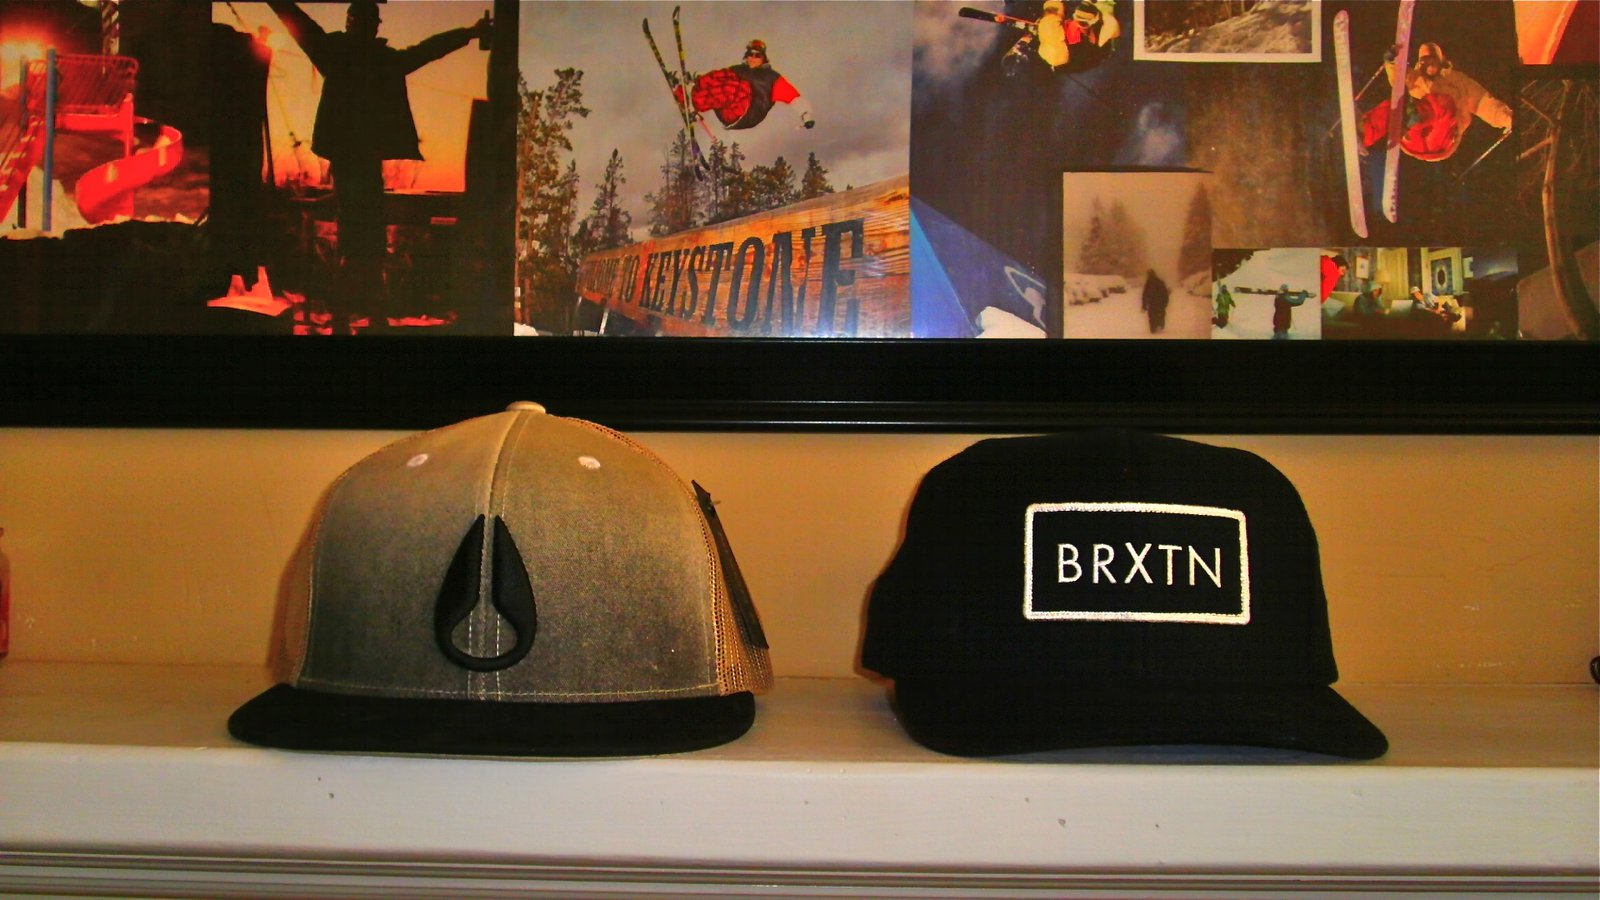 FS/FT Nixon and Brixton